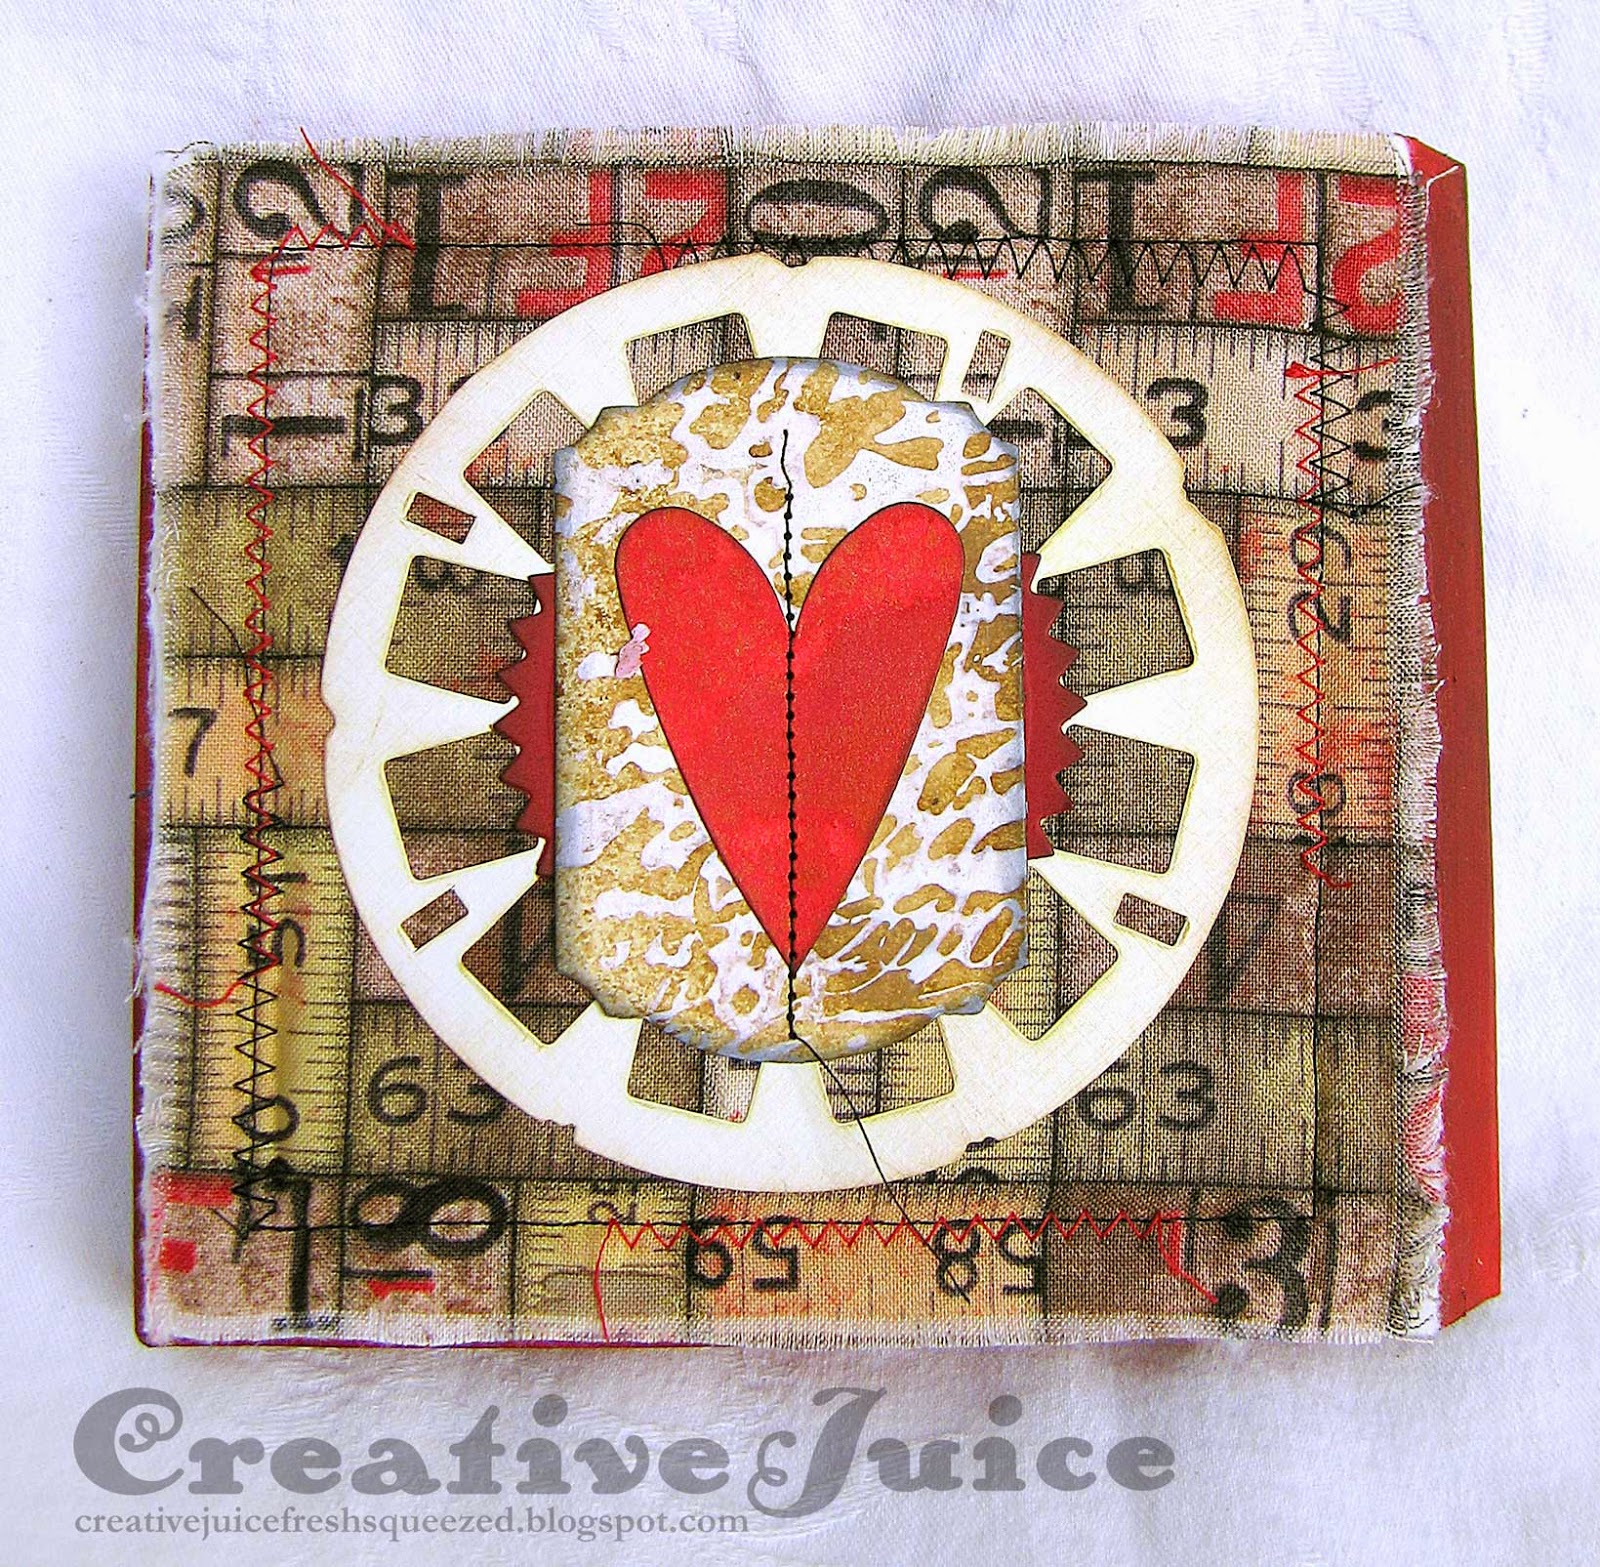 Compendium of Curiosities 3 Challenge #19 – Frayed Fabric Valentine